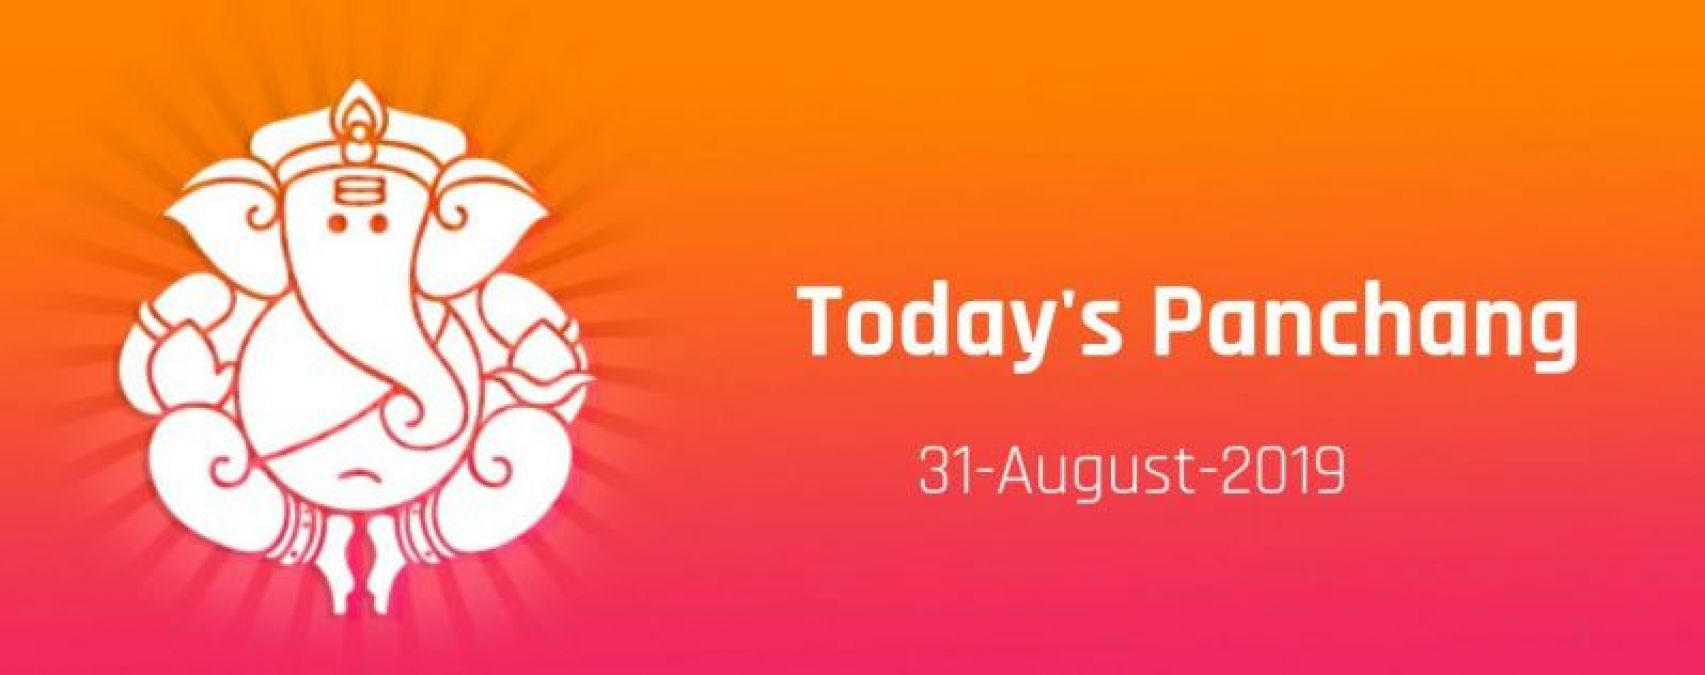 Find out here today's Panchang, Shubh Muhurat, and Rahukal